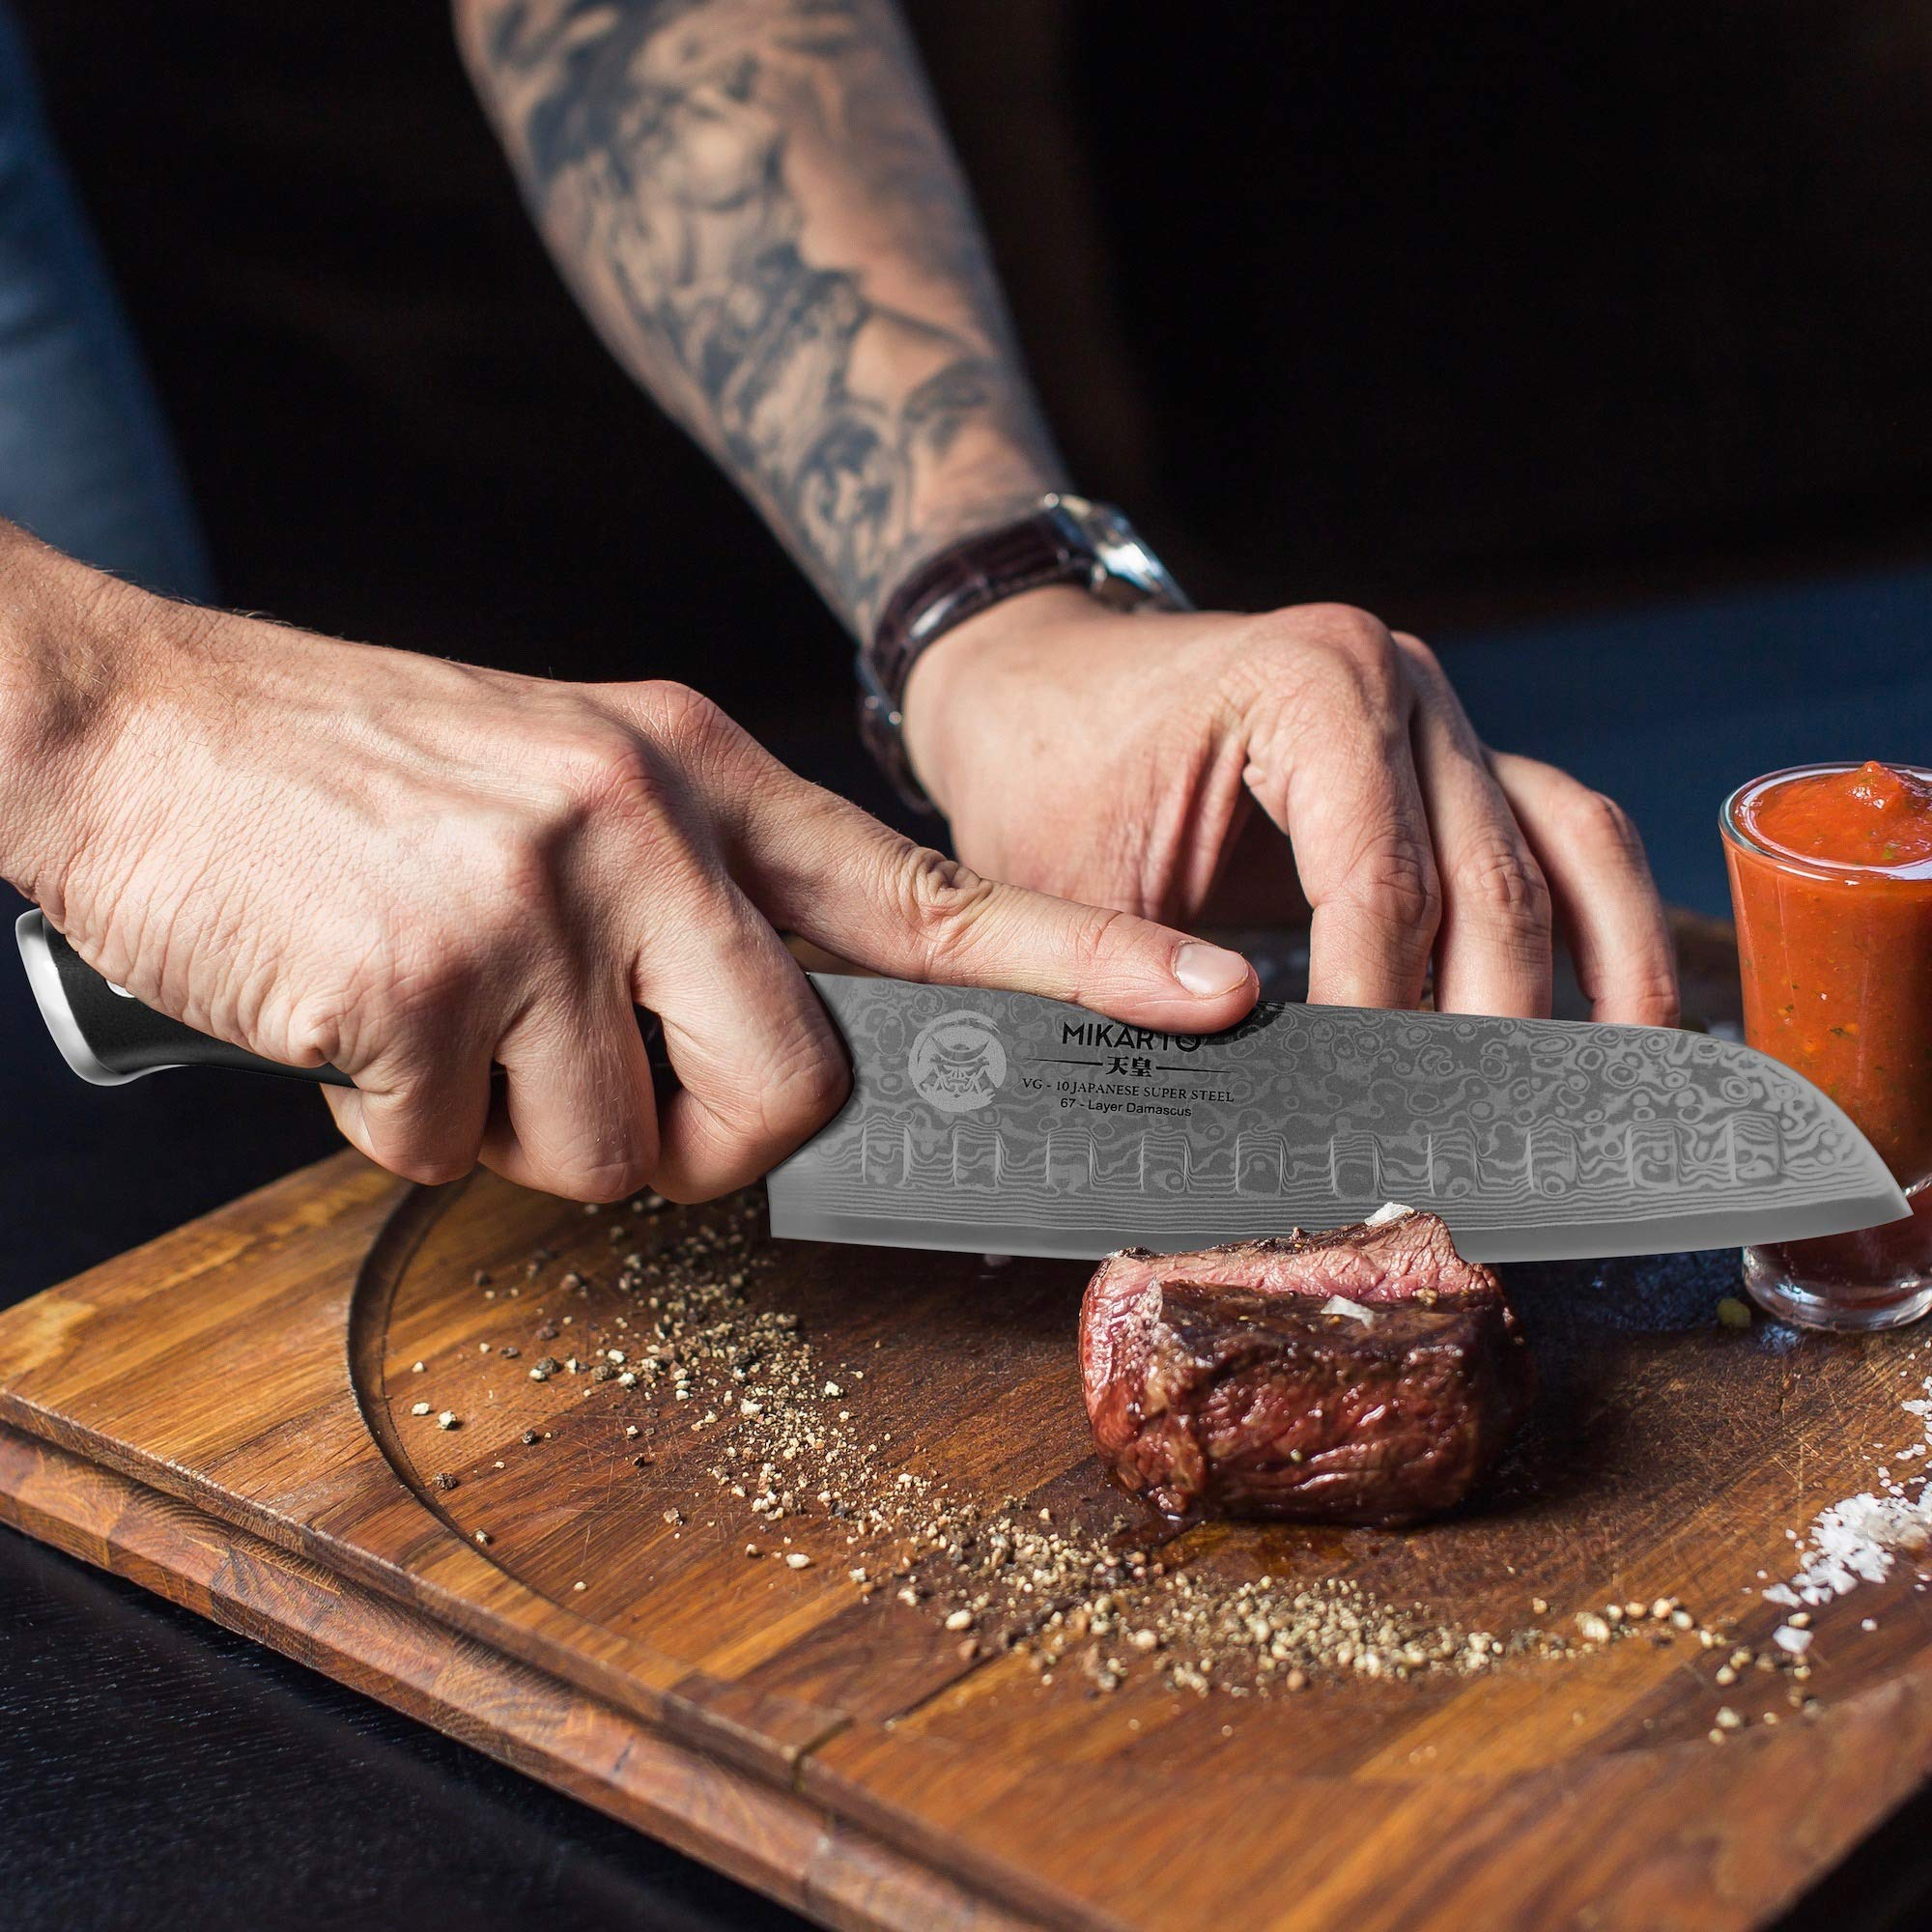 Santoku Japanese Chef Knife, 7 inch, Professional Grade - Damascus Stainless Steel Knife with Tsunami Rose Finish - Ultra Sharp, High Carbon Kitchen Knives - Quality, All Purpose, Precision Cutting by MIKARTO Knife Ware (Image #9)